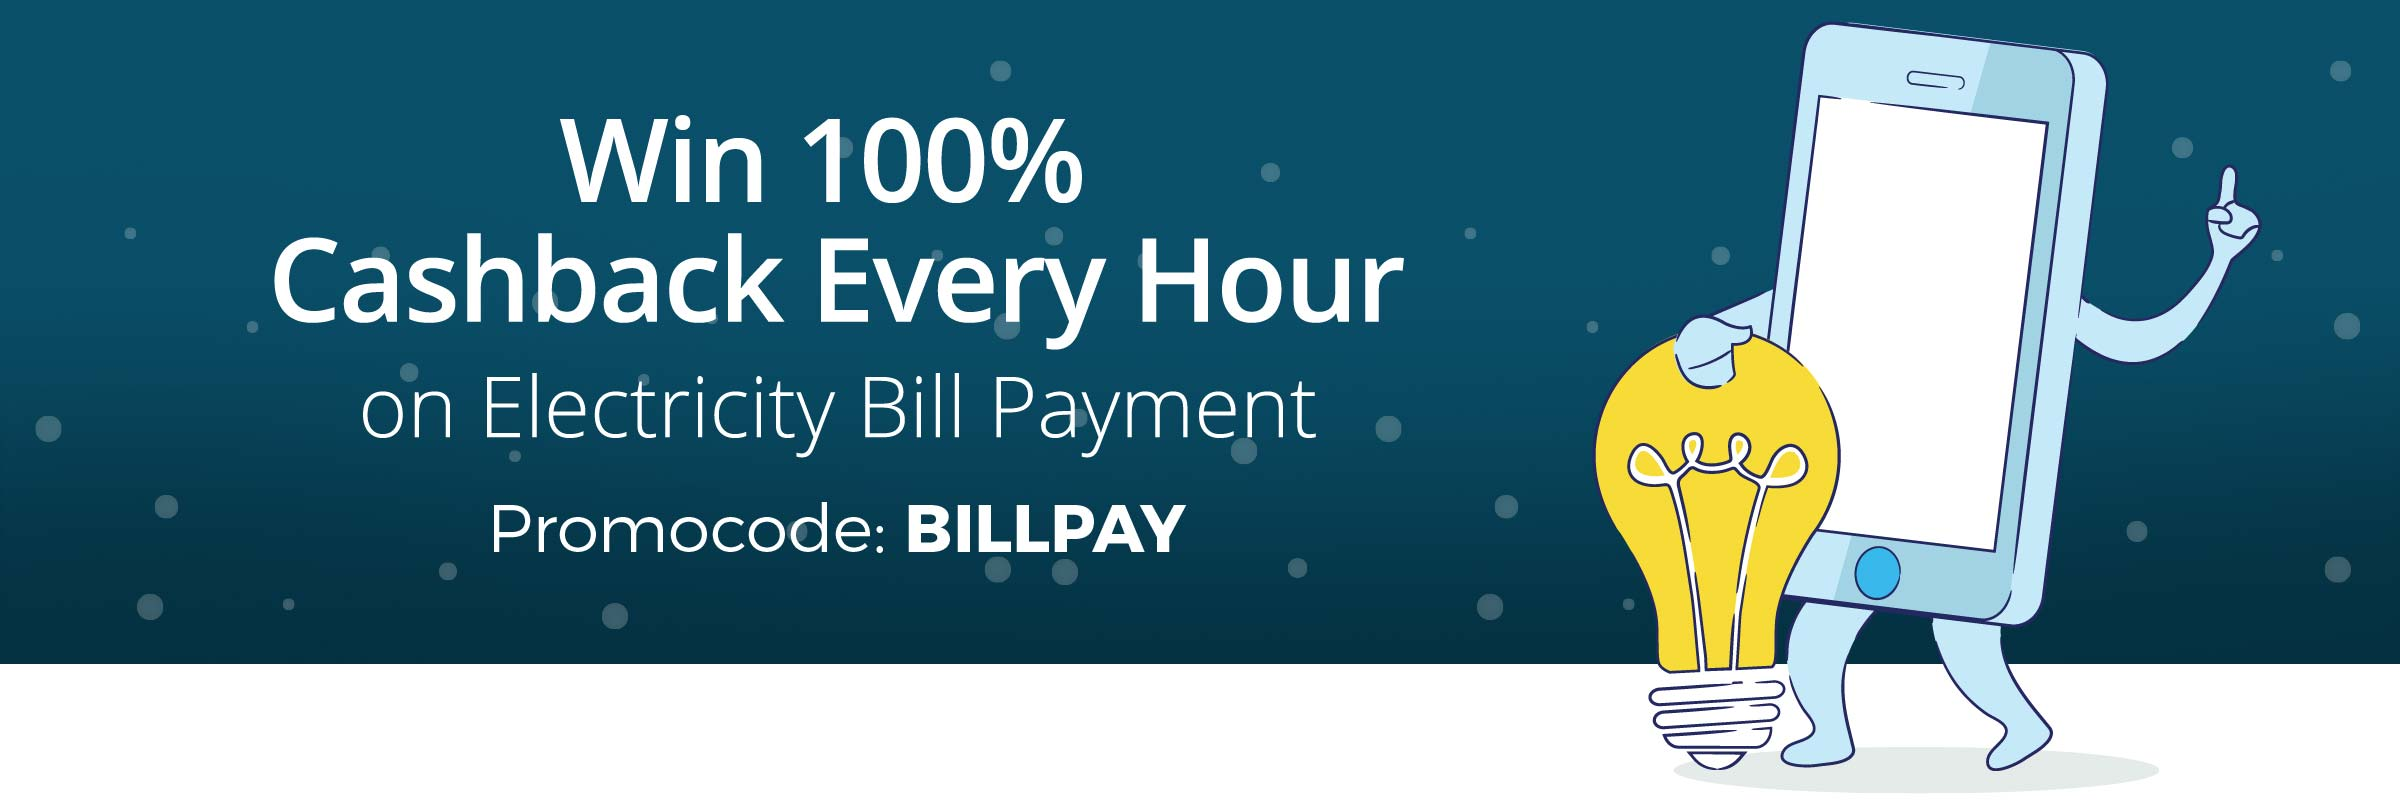 Electricity bill payment paytm coupons